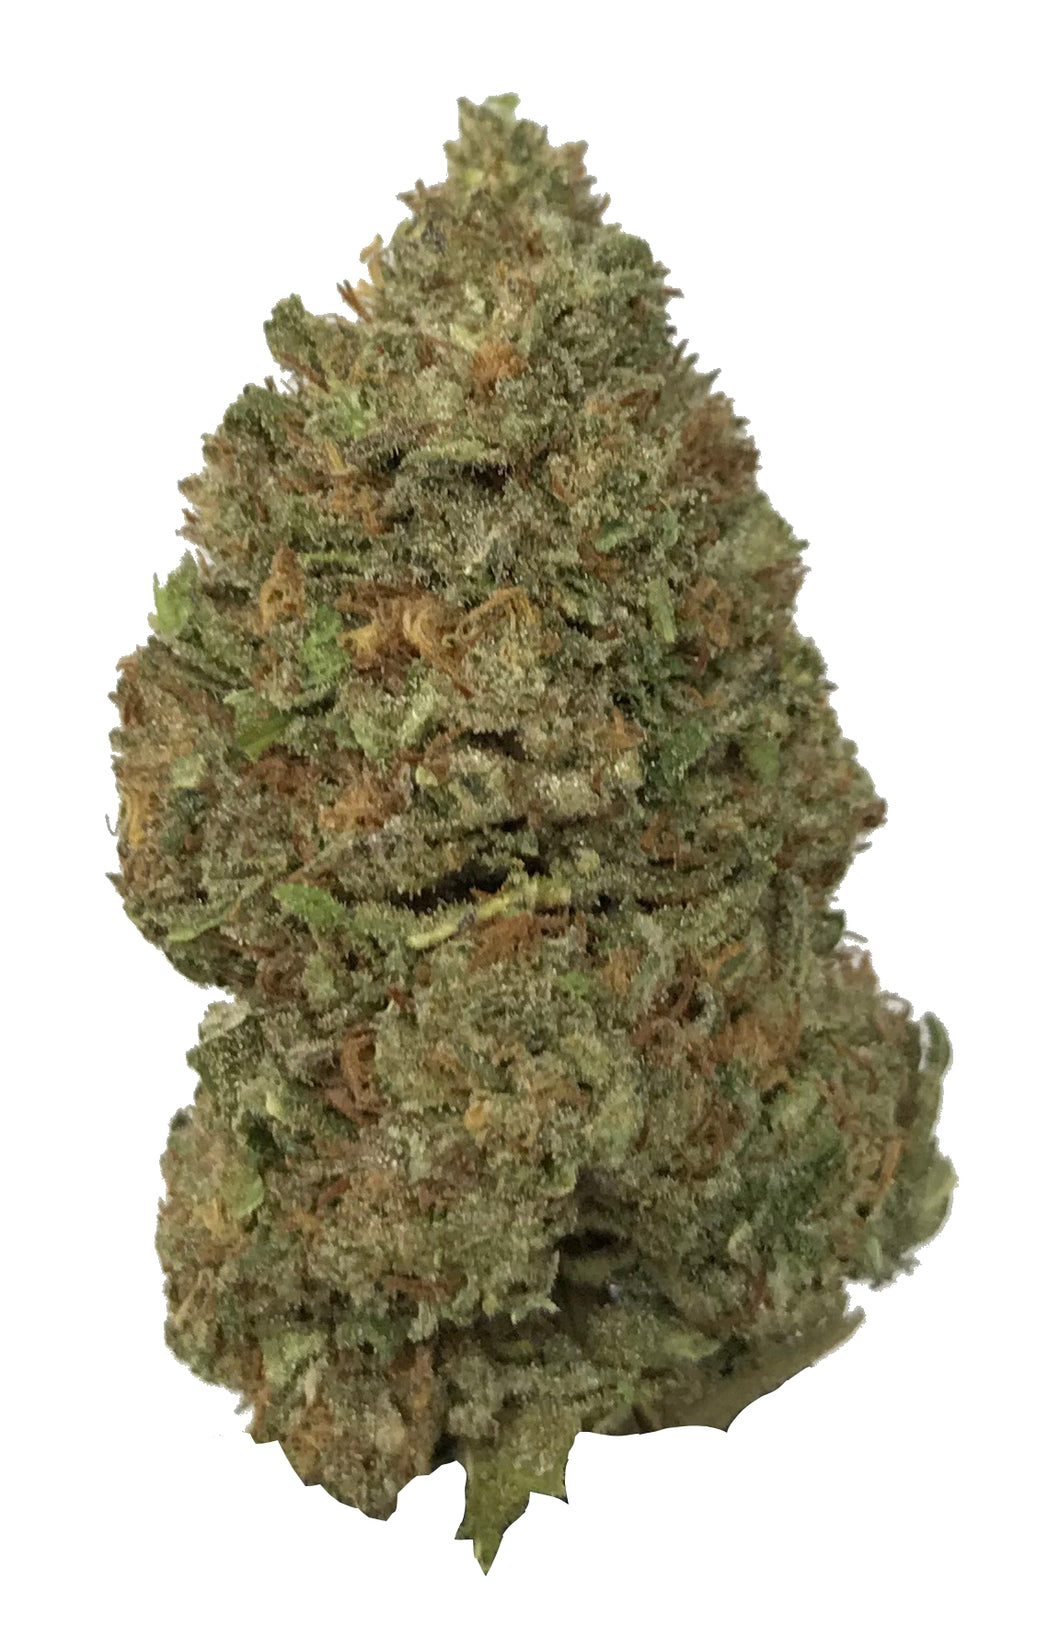 Bubba Kush CBD Hemp Flower